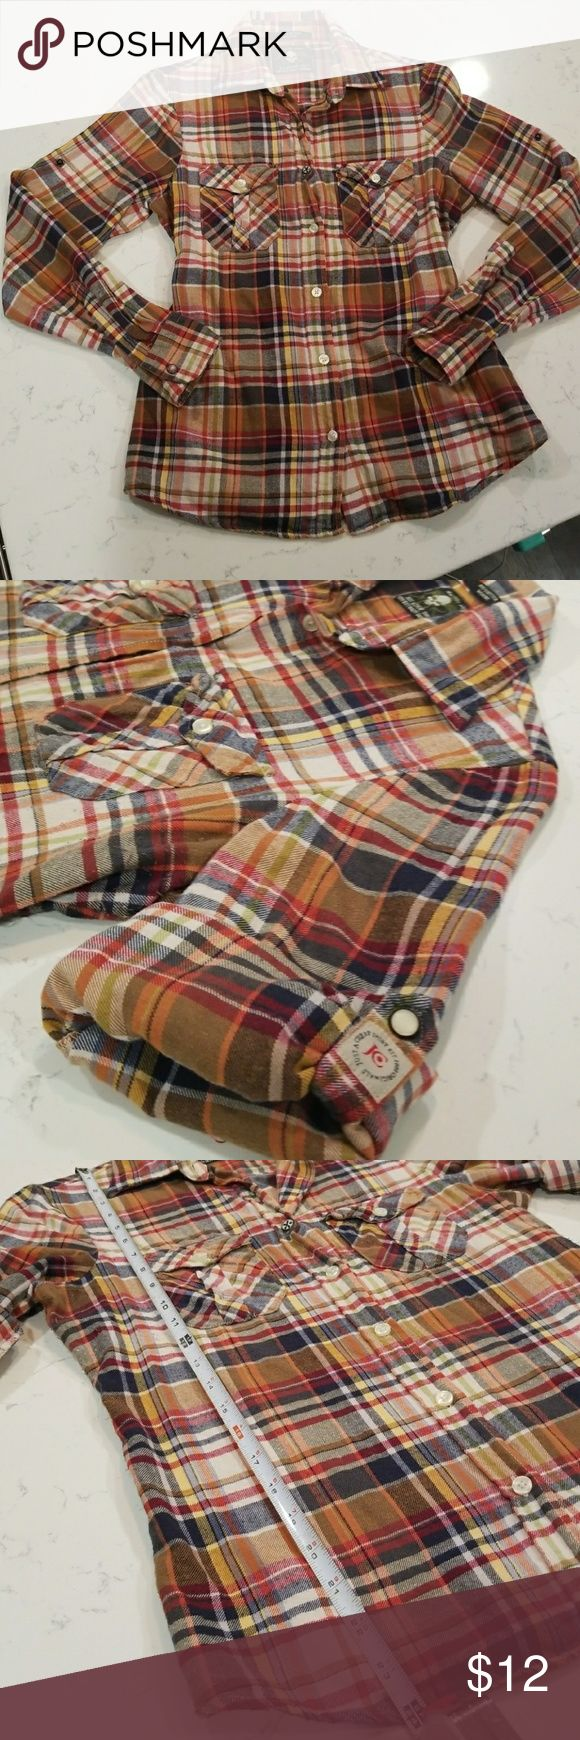 """Just A Cheap Shirt flannel button up Vintage looking plaid, flannel shirt. 100% Cotton. Snaps on sleeves and top button. Tag says Medium, but fits like a woman's Small. 24"""" from shoulder to bottom hem. Just A Cheap Shirt Tops Button Down Shirts"""